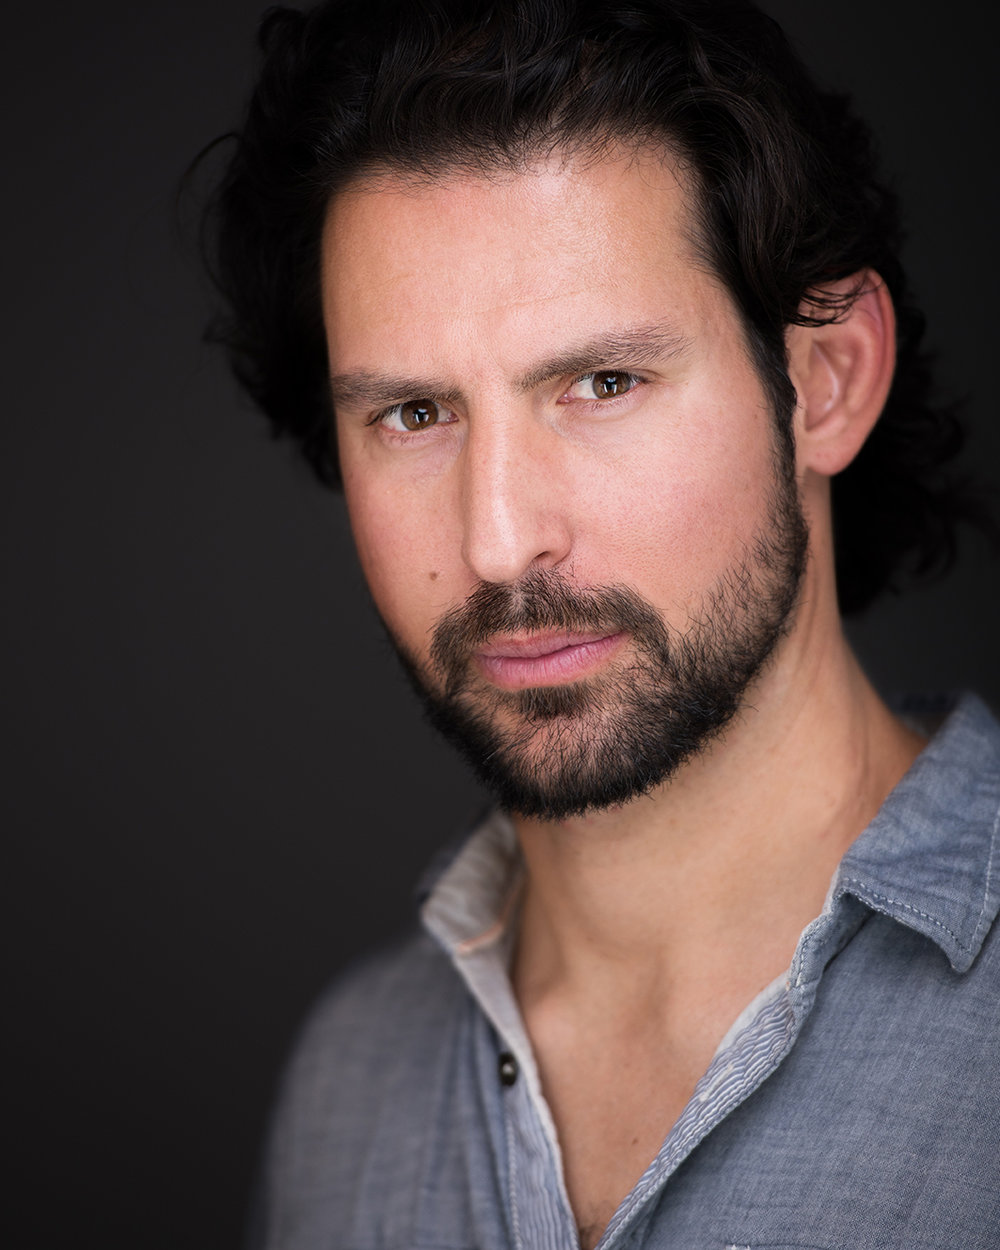 Jonathan Libman, Director and Playwright